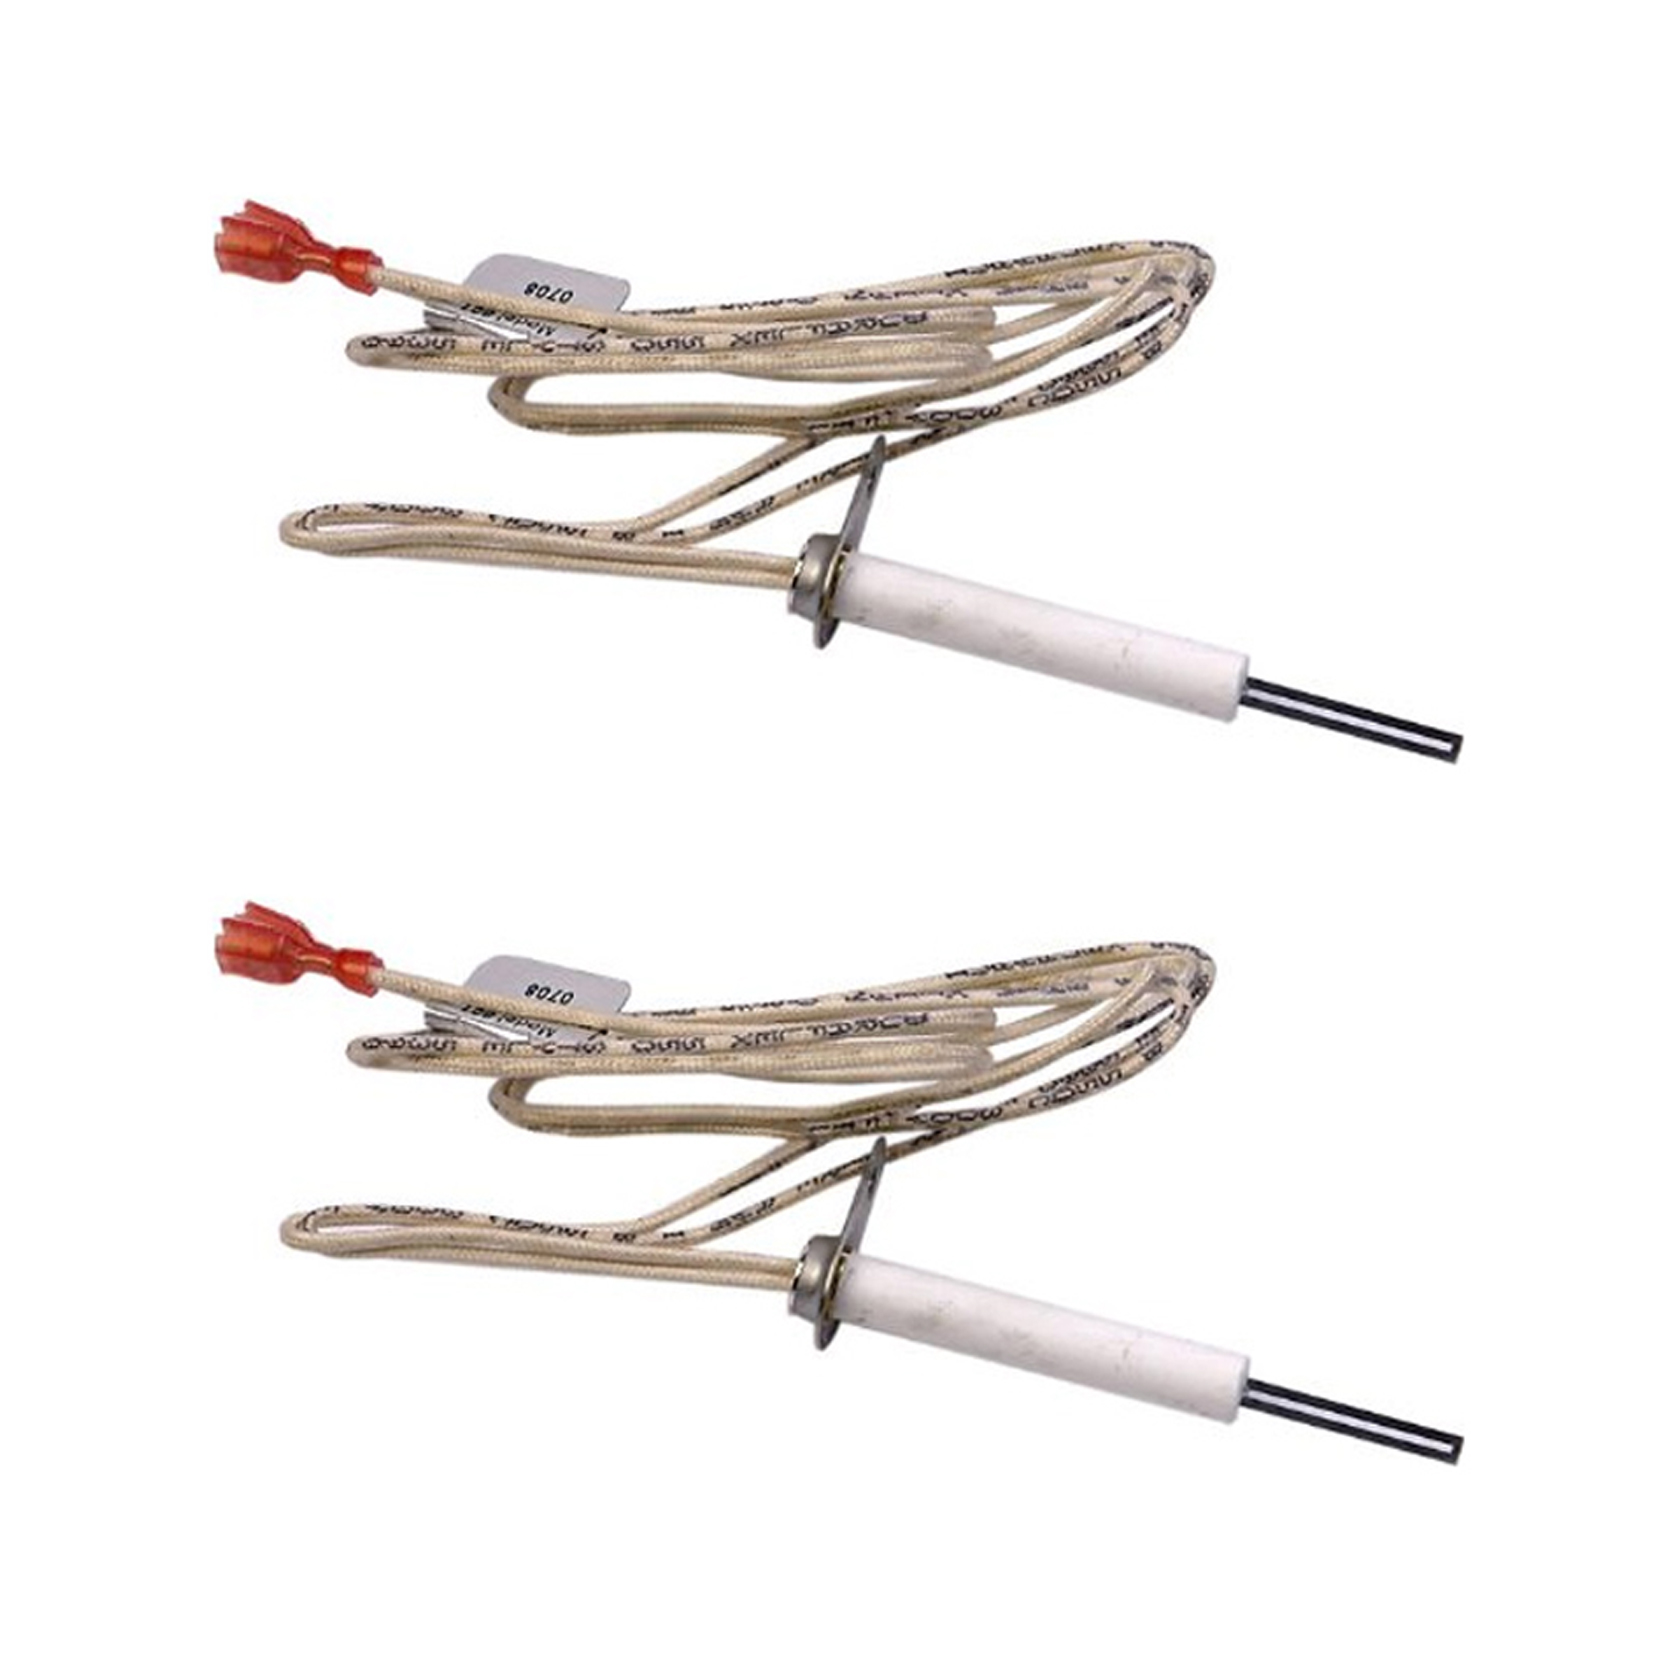 Jdragon for Ford 1987-1993 Mustang Chrome Replacement Headlights Corner Lamps Pair GT LX SVT